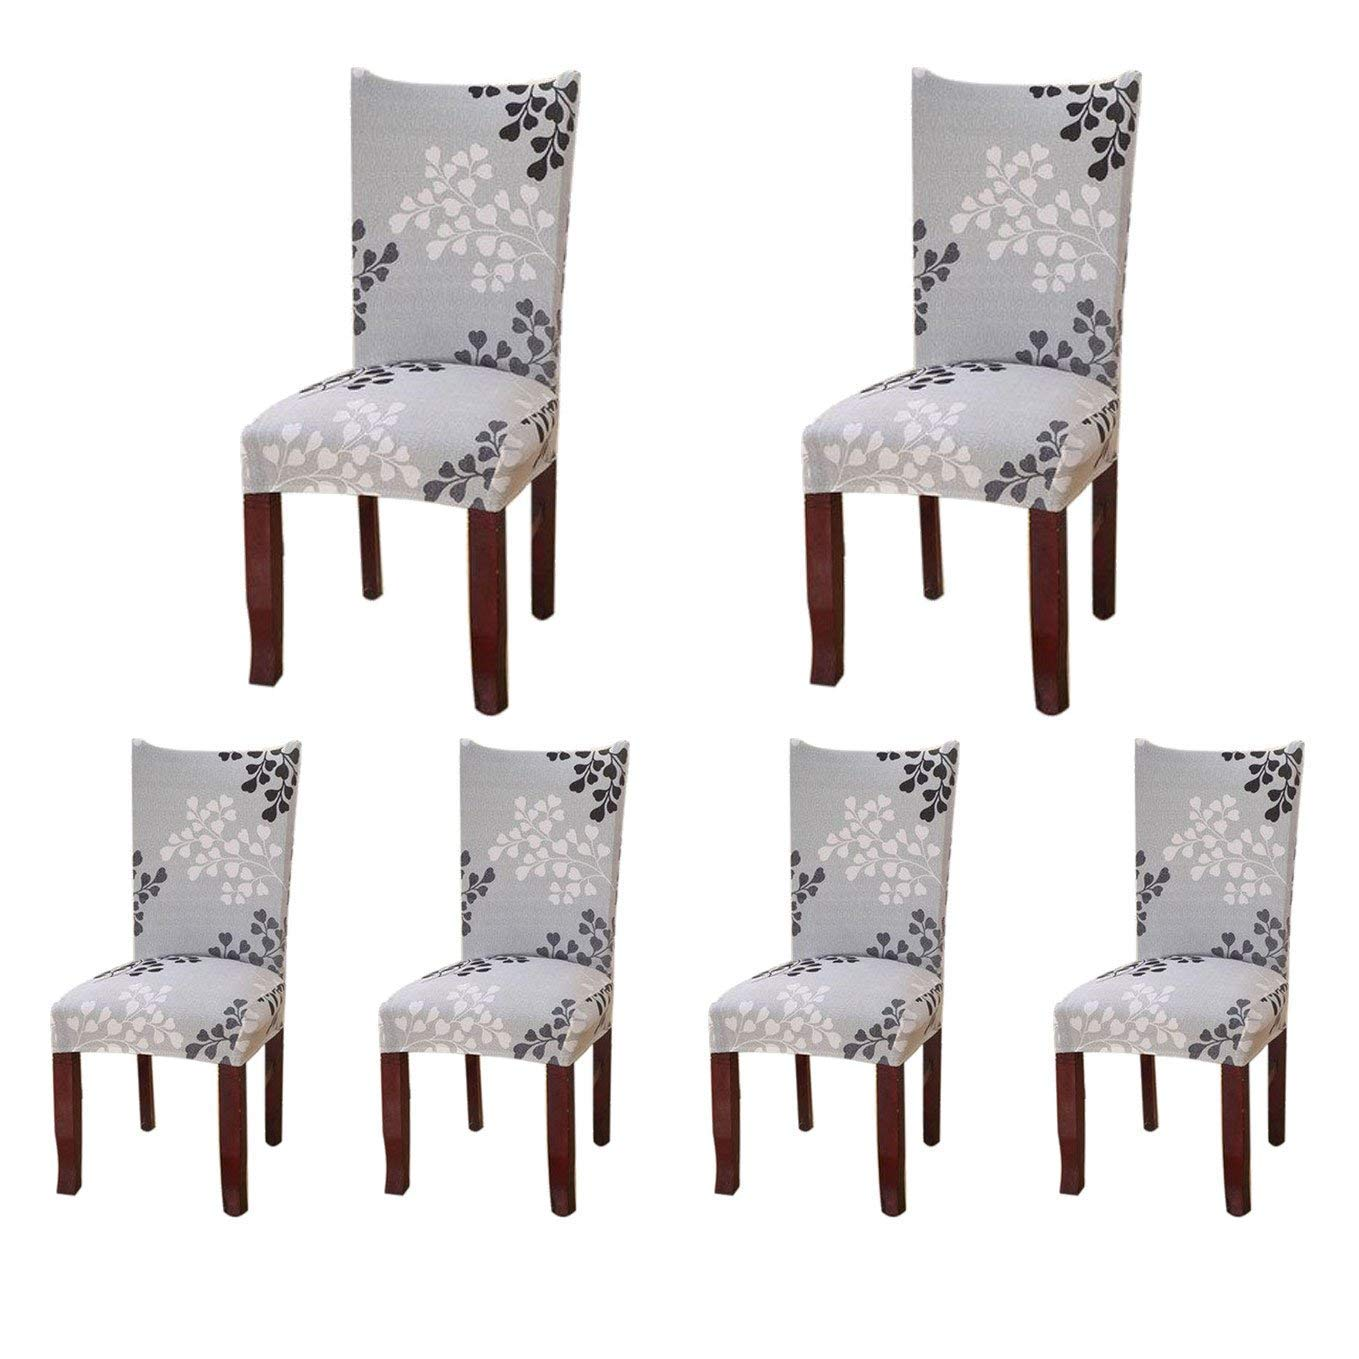 SoulFeel 6 x Soft Spandex Fit Stretch Short Dining Room Covers with Printed Pattern, Banquet Chair Seat Protector Slipcover for Home Party Hotel Wedding Ceremony, Pack of 6, Style 24